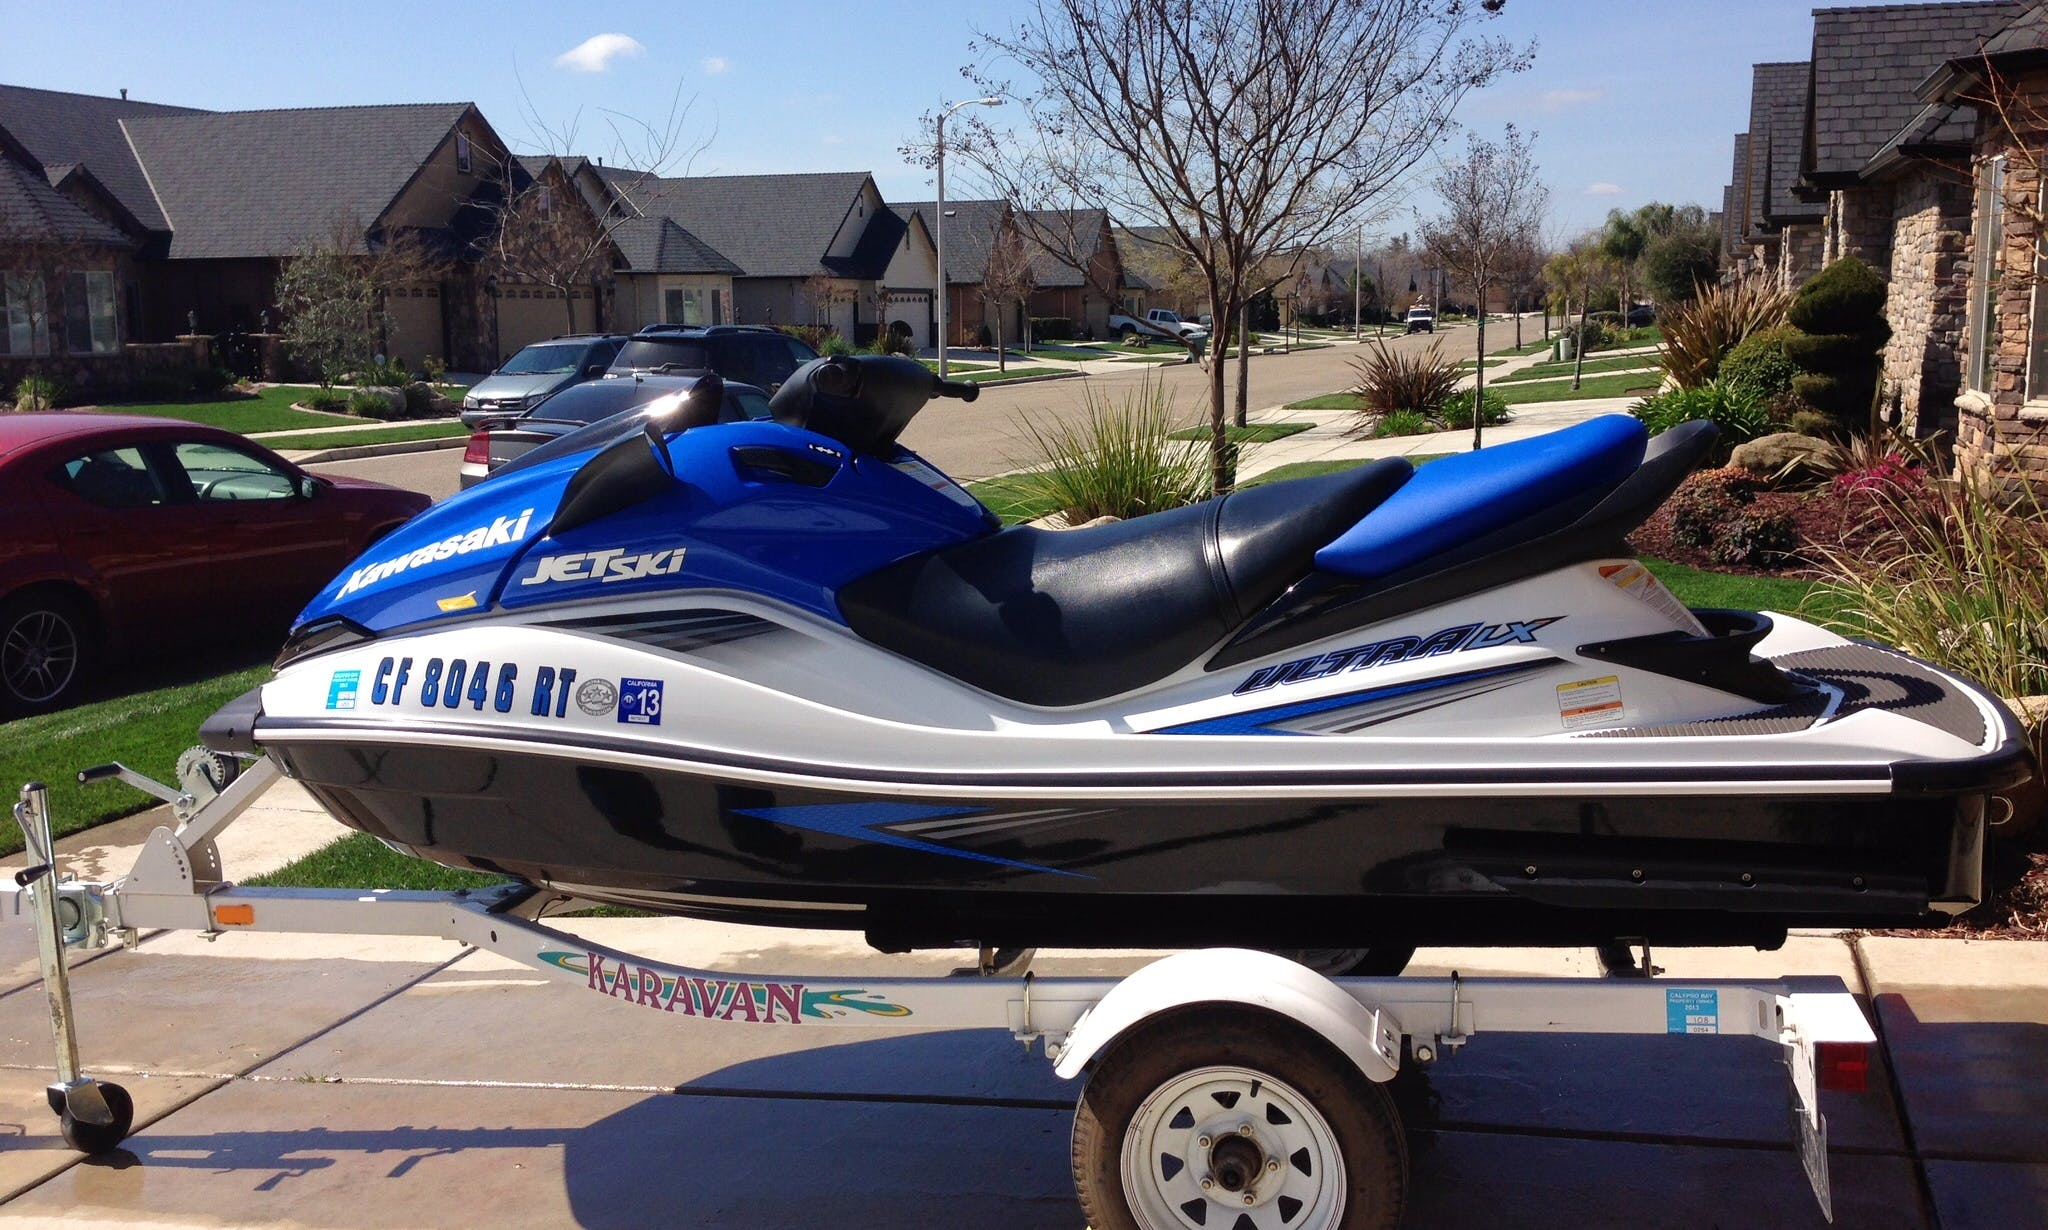 Jet Ski Rental in Clearlake Oaks, California